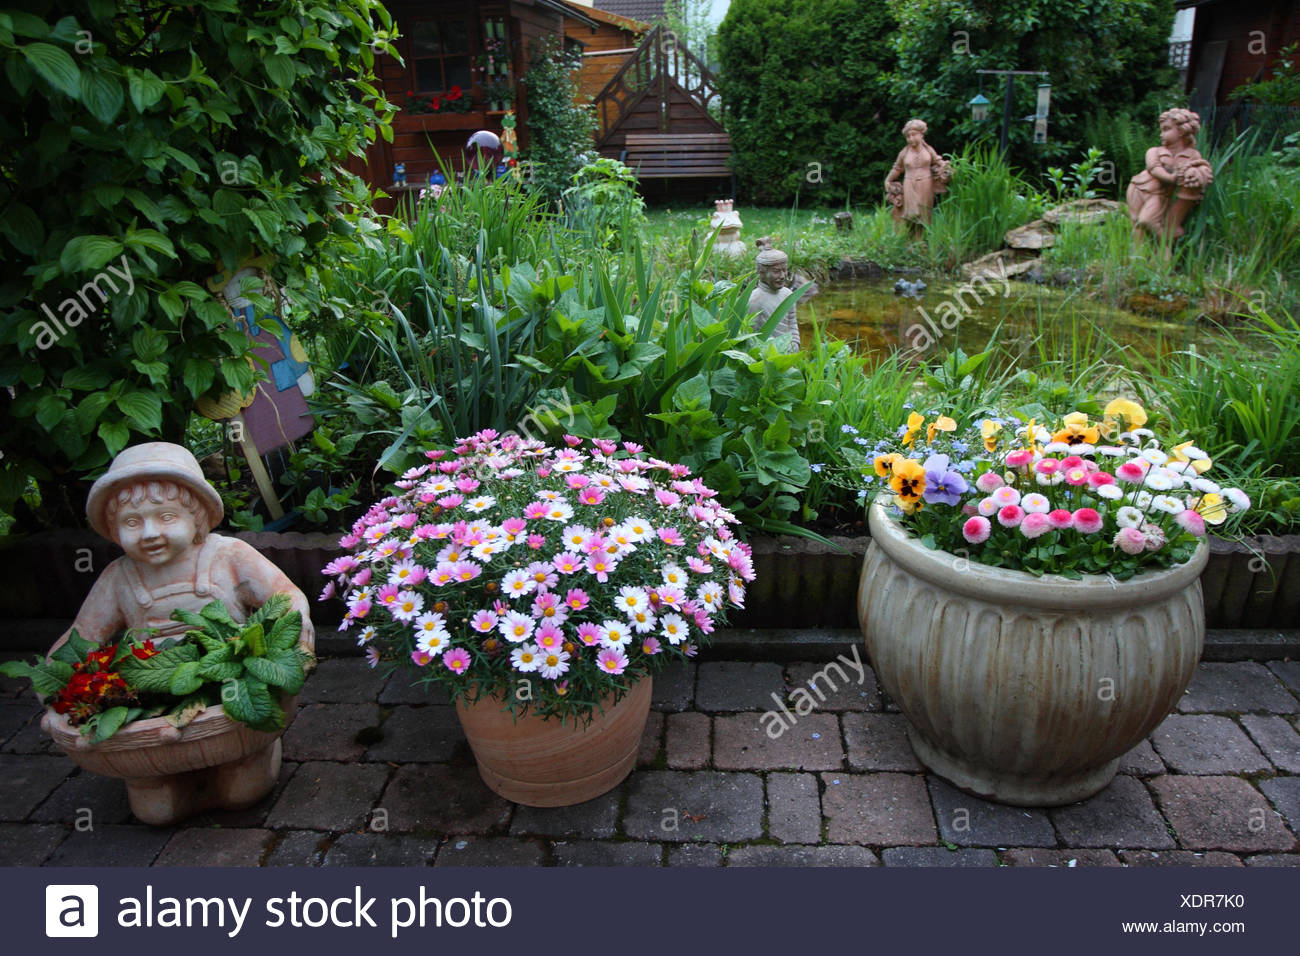 Garden With Flowers And Garden Figures,   Stock Image